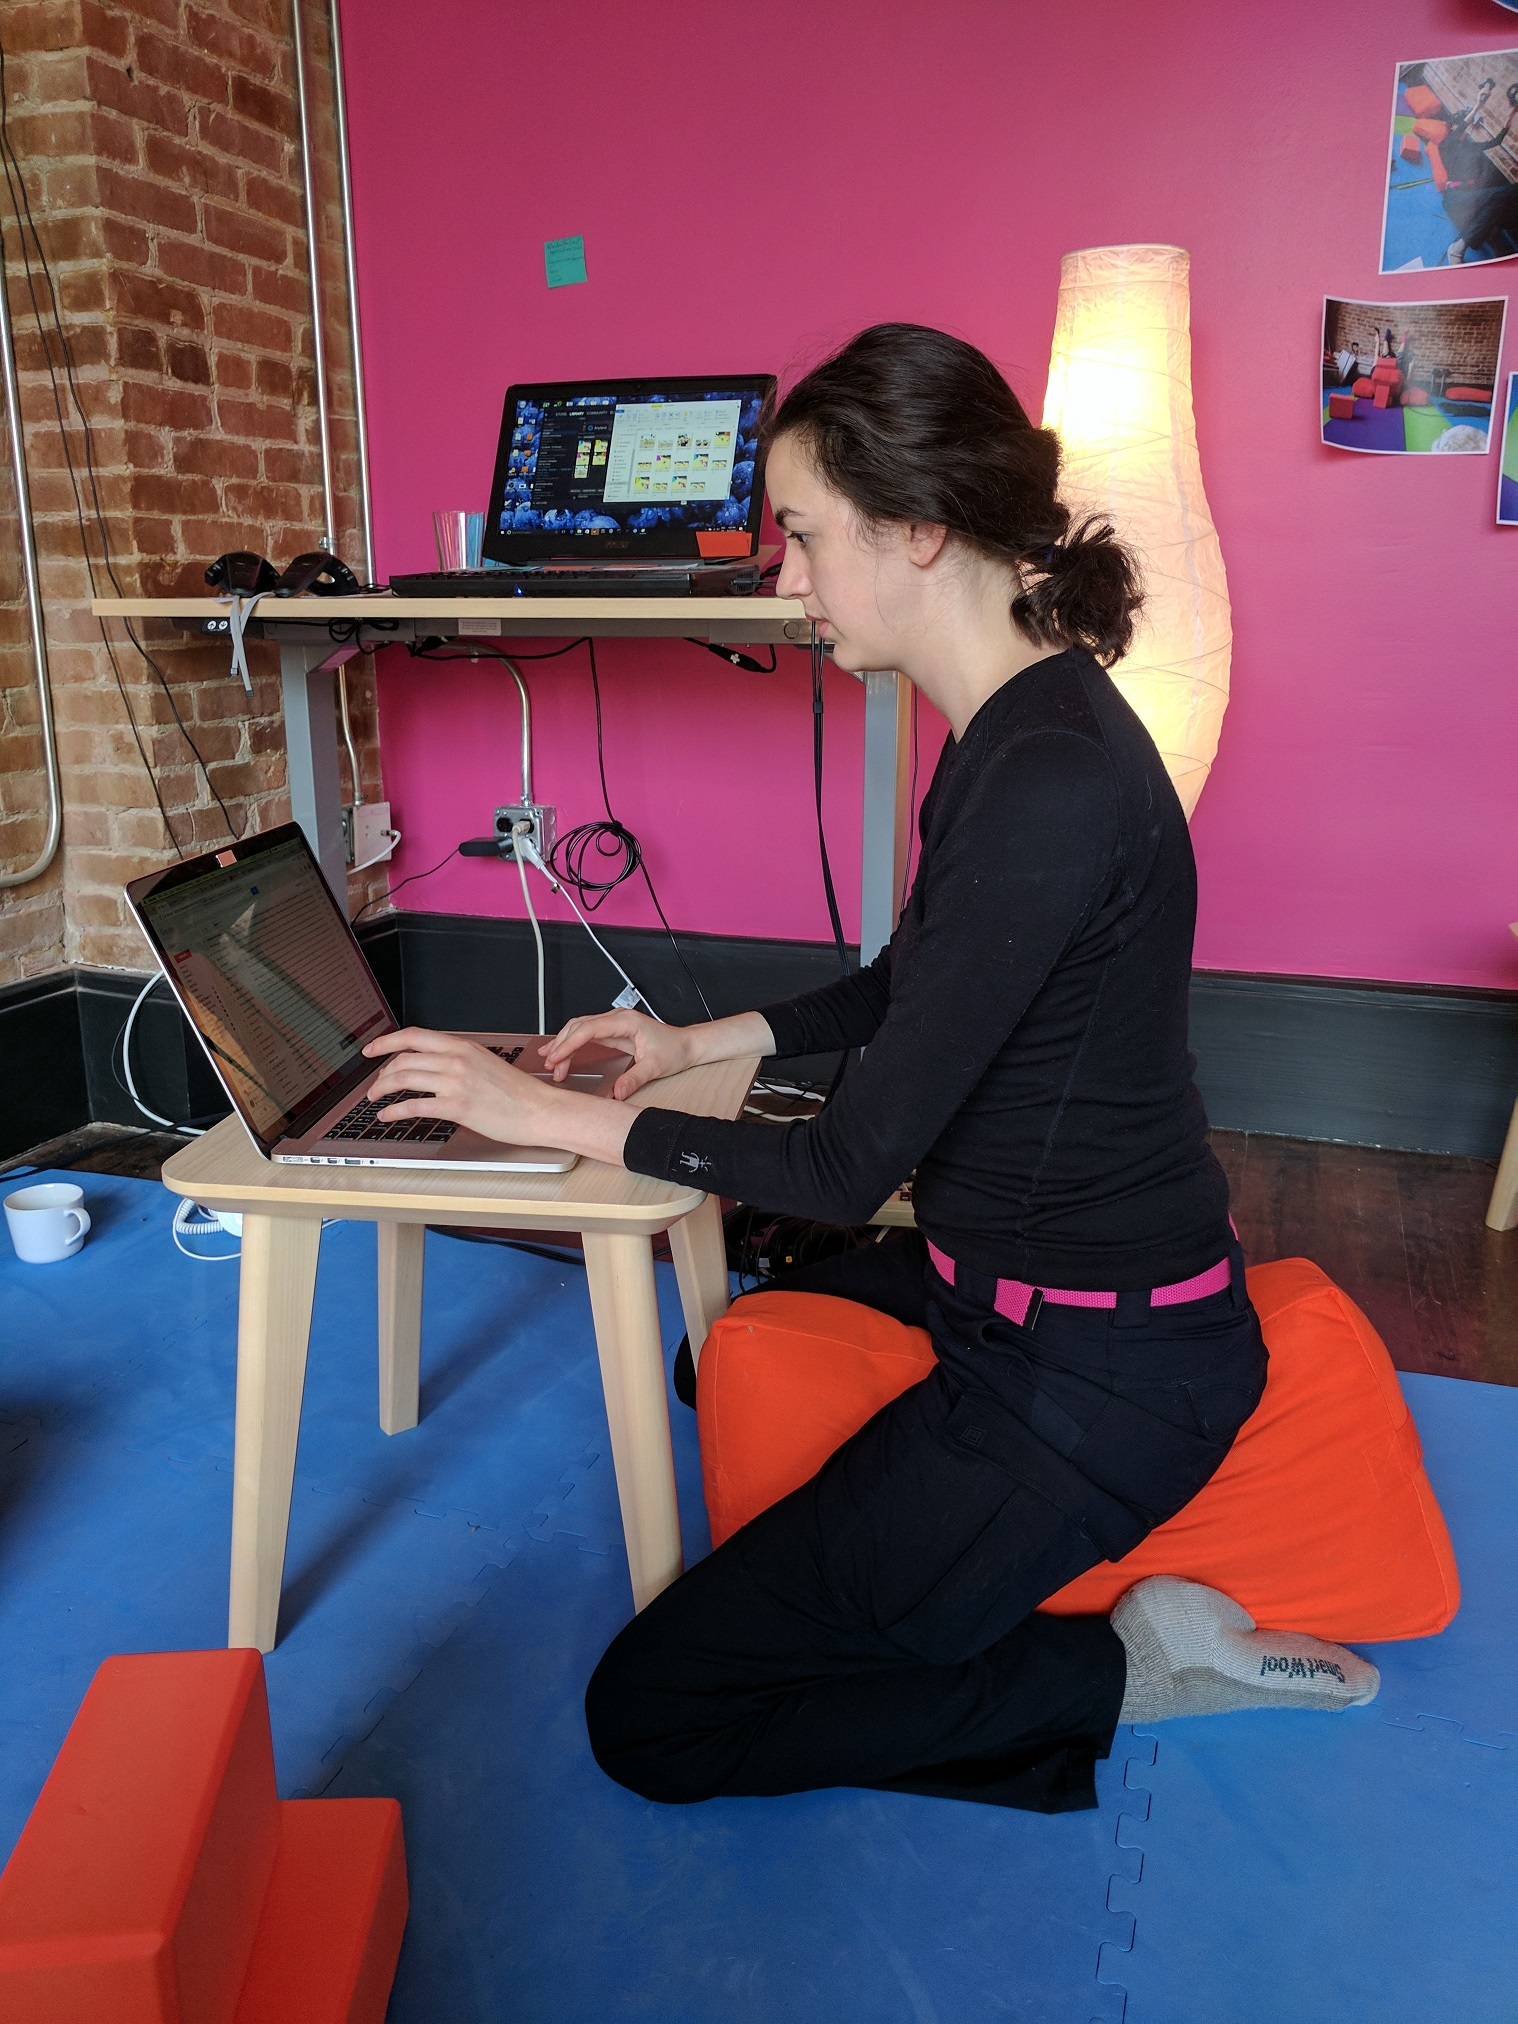 Sitting with a cushion between your bent knees may work better for humans who find cross legged sitting uncomfortable (even elevated as in previous pictures).